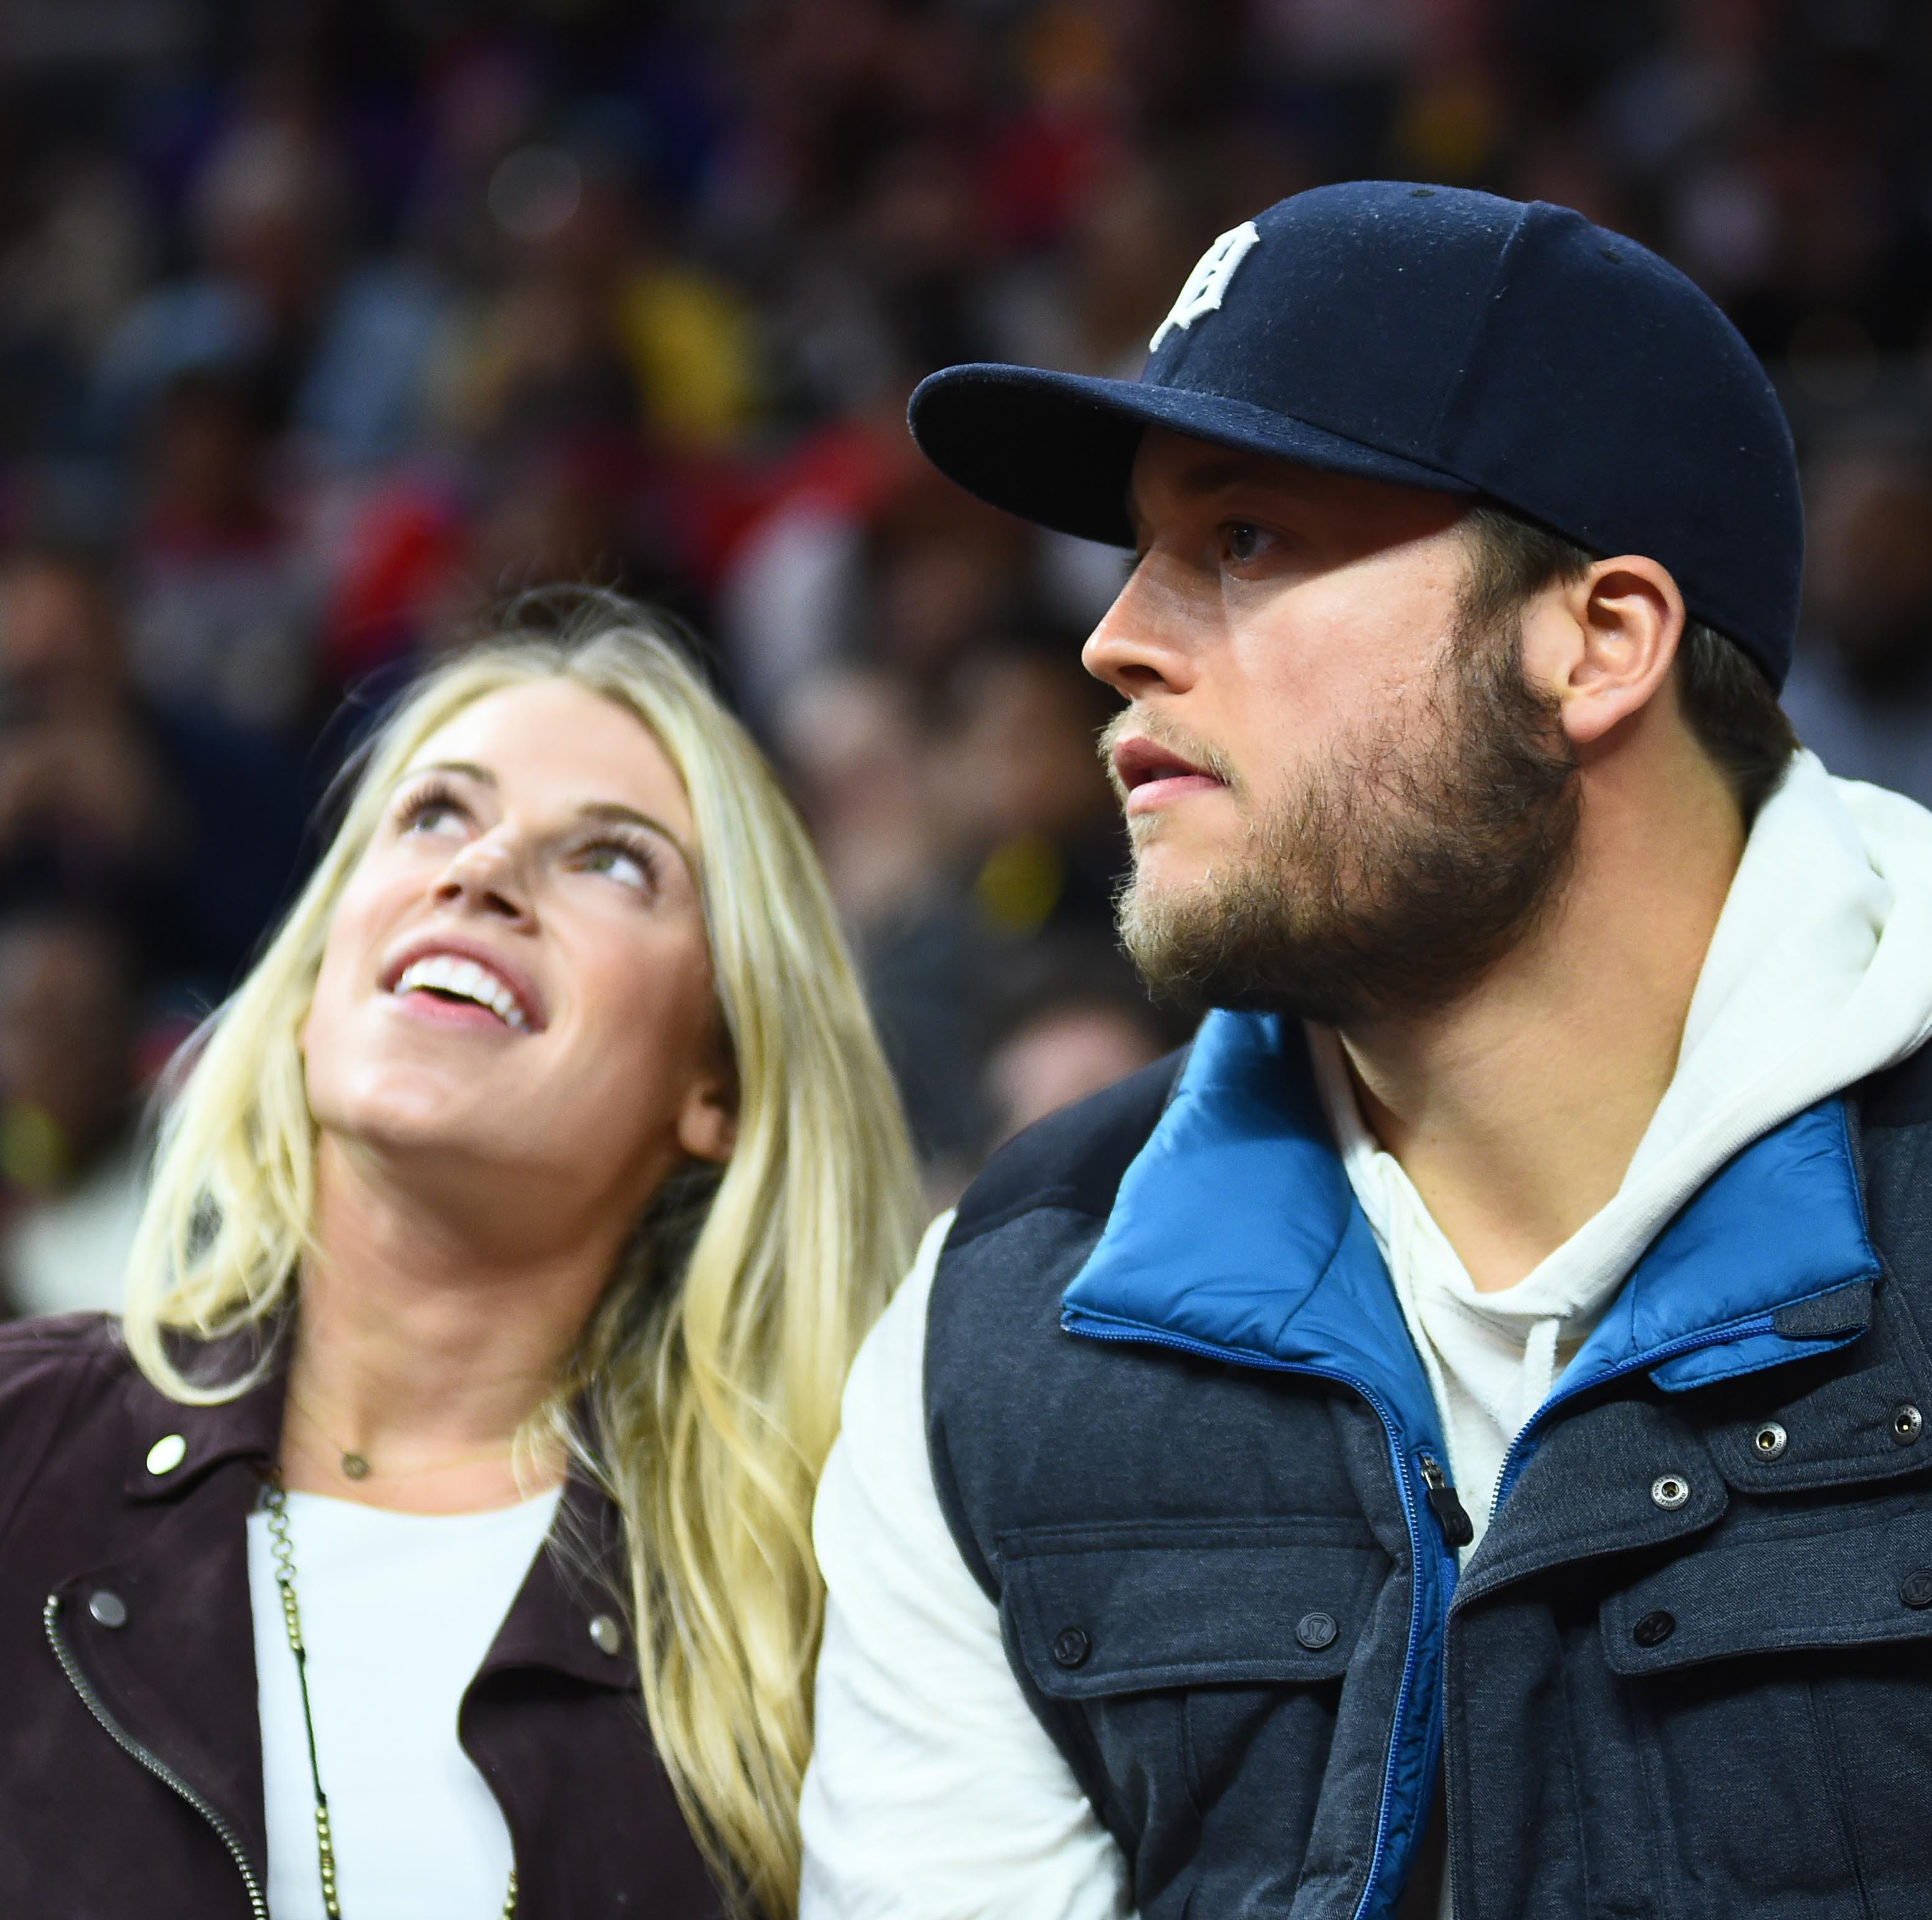 Kelly Stafford hospitalized again after brain surgery: 'The pain got so far ahead of me'